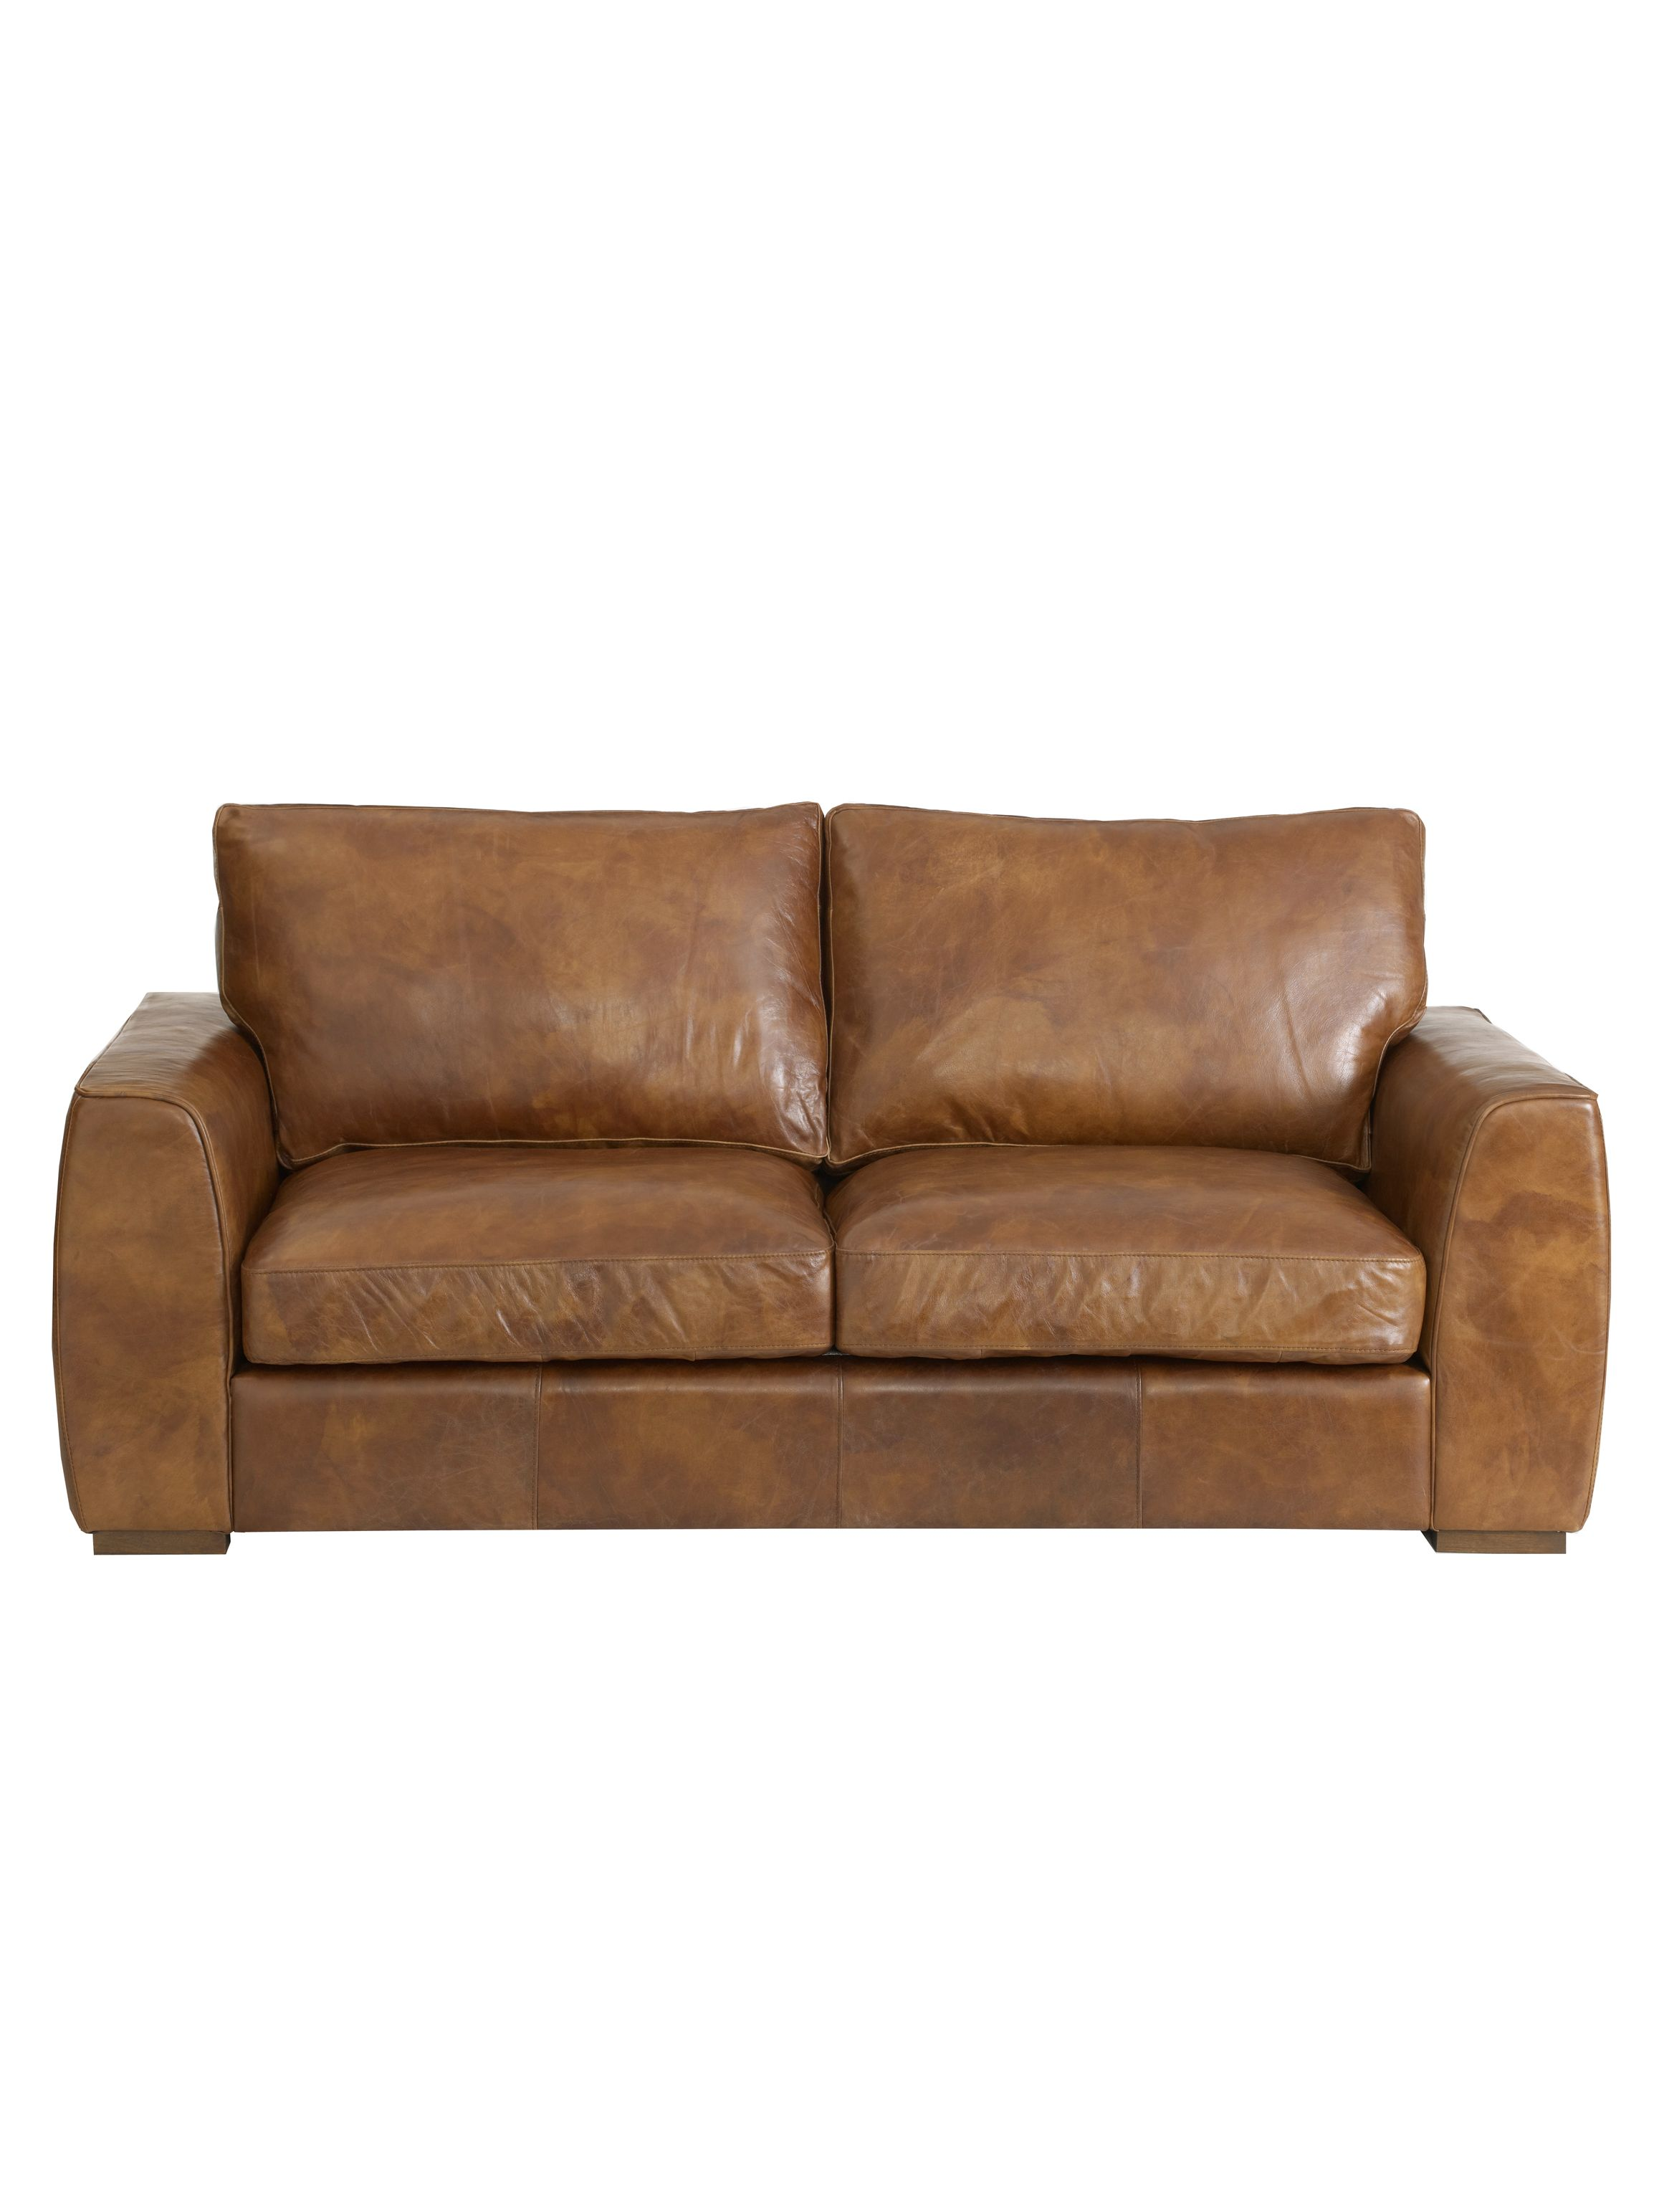 Colorado Nut 3 seater large sofa